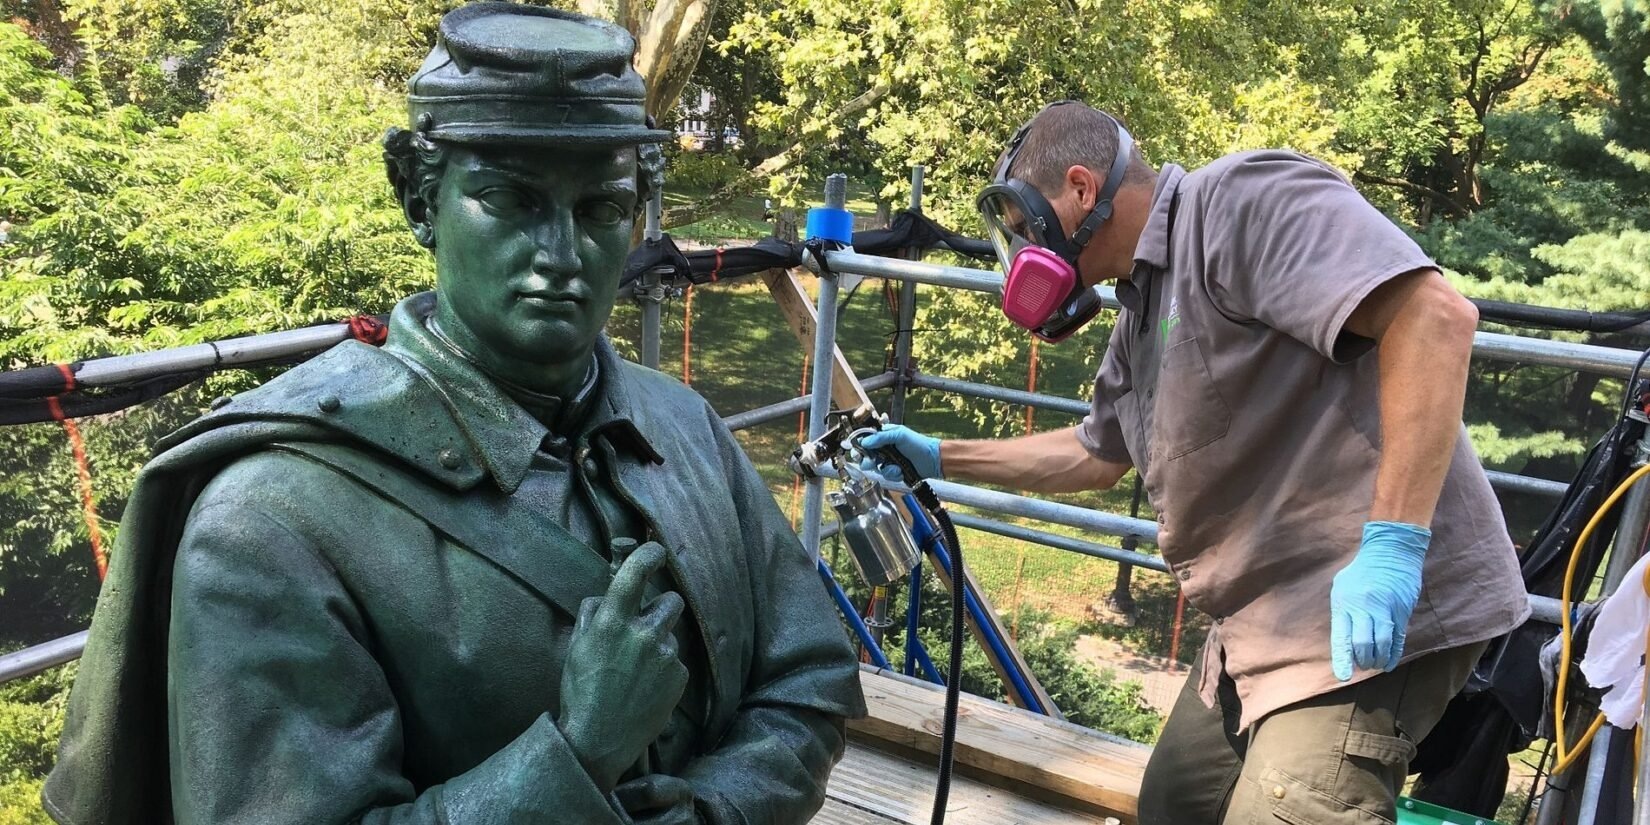 A protective coating is sprayed on the bronze statue by a worker on a scaffold.